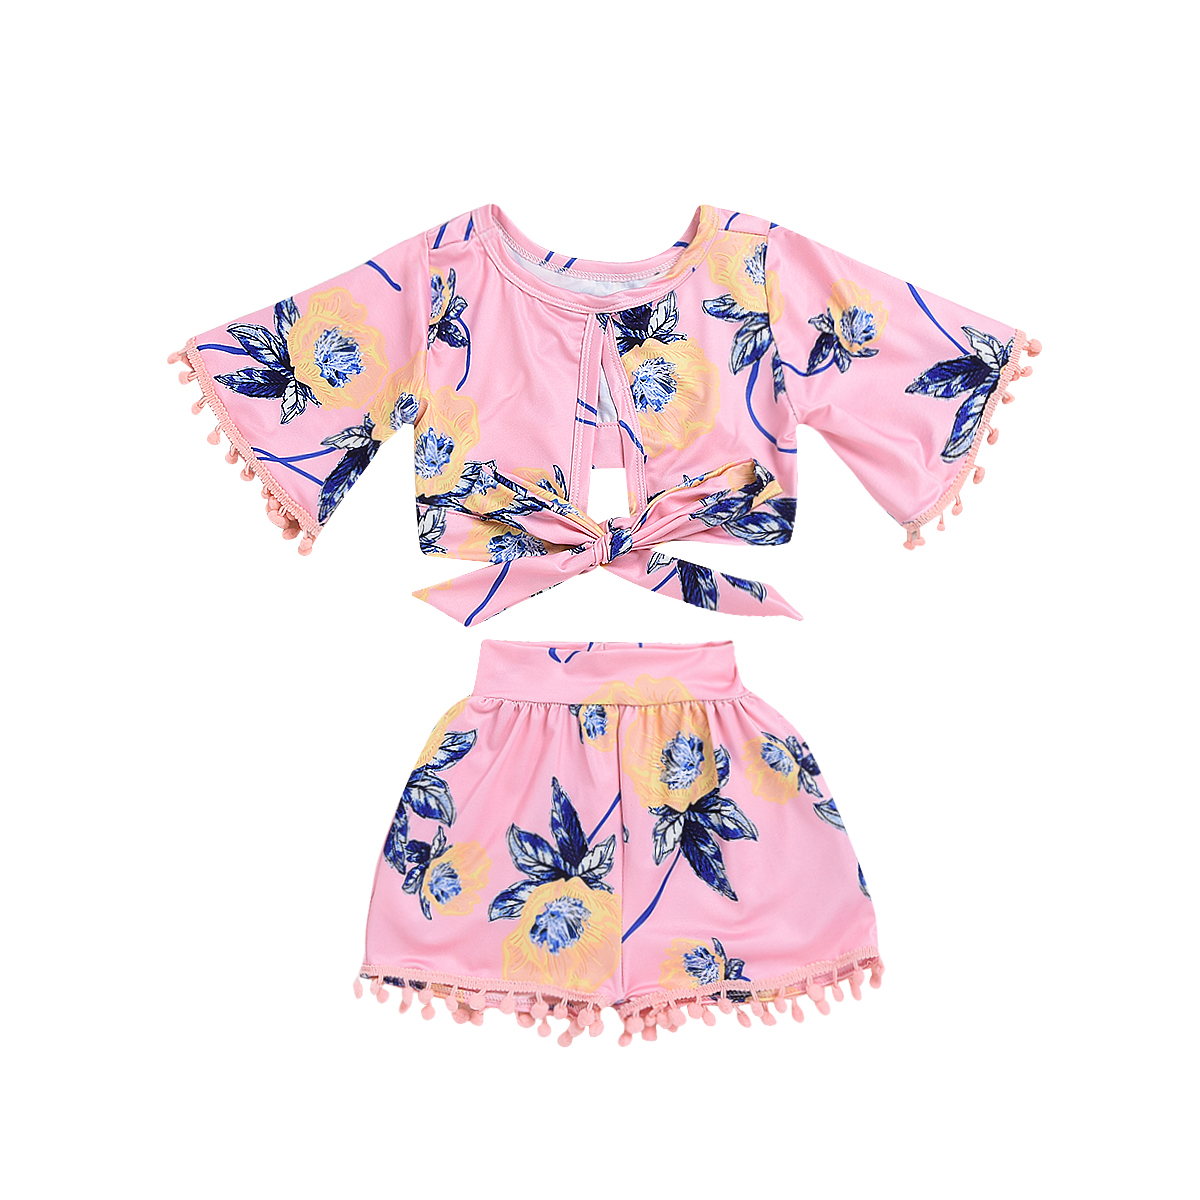 цены Pudcoco Toddler Girl Summer Clothing Set T-shirt Tops+Short Pants Outfits Kids Baby Girl Flower Tassel Clothes 2pcs